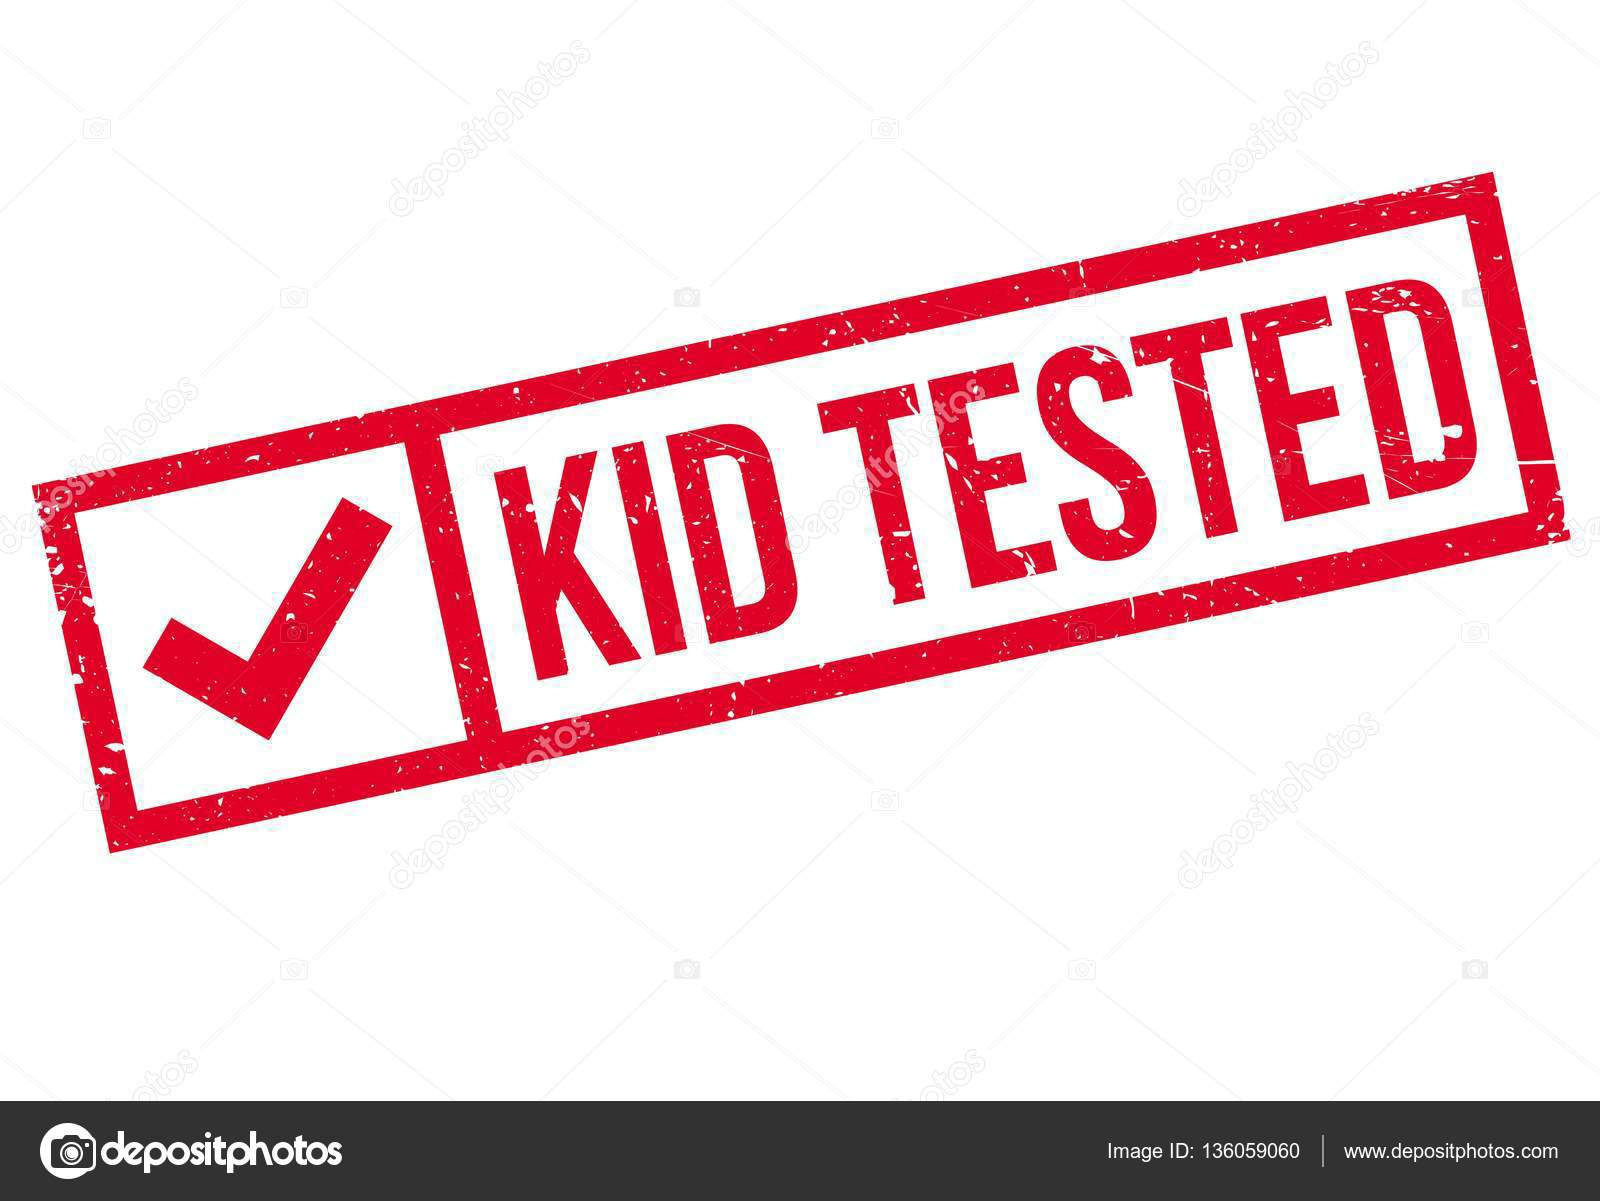 Kid Tested Rubber Stamp Stock Vector